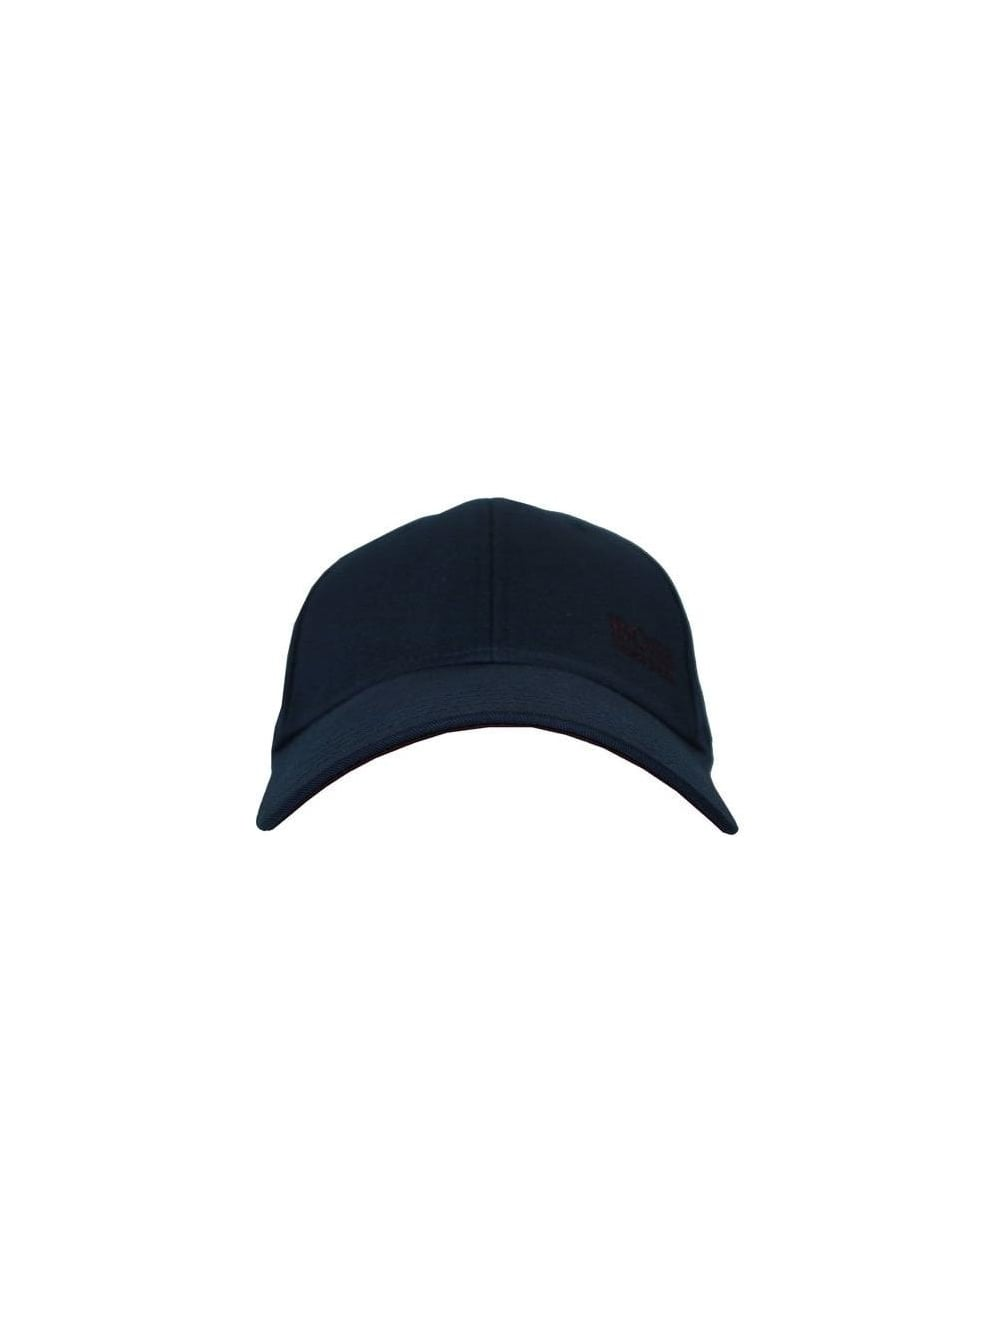 HUGO BOSS Green Logo Cap in Navy - Northern Threads 2d120974c87